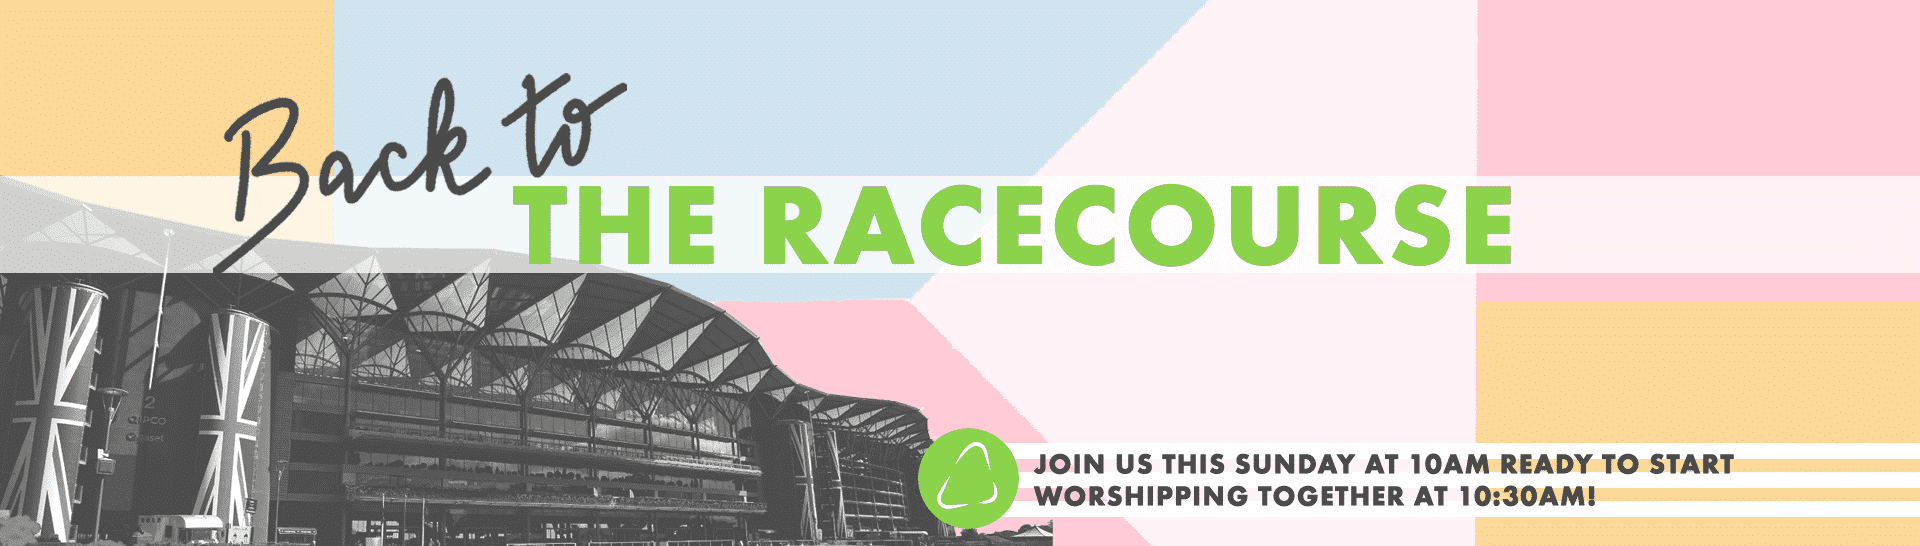 back to the racecourse website banner 1 - HOME